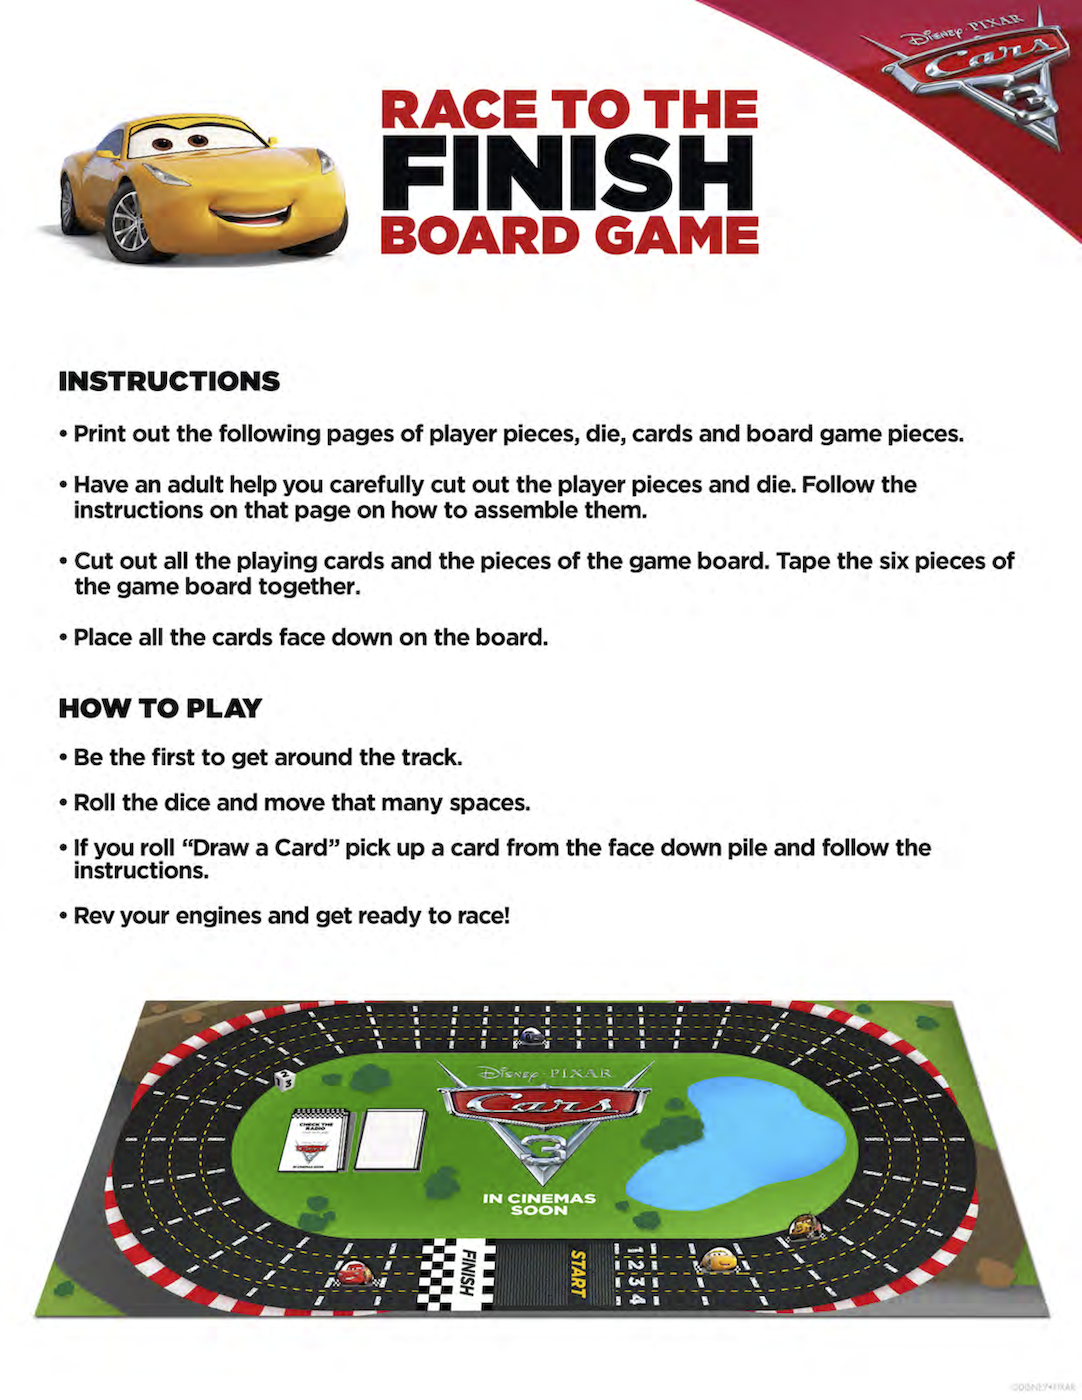 Cars 3 Race to the Finish Board Game